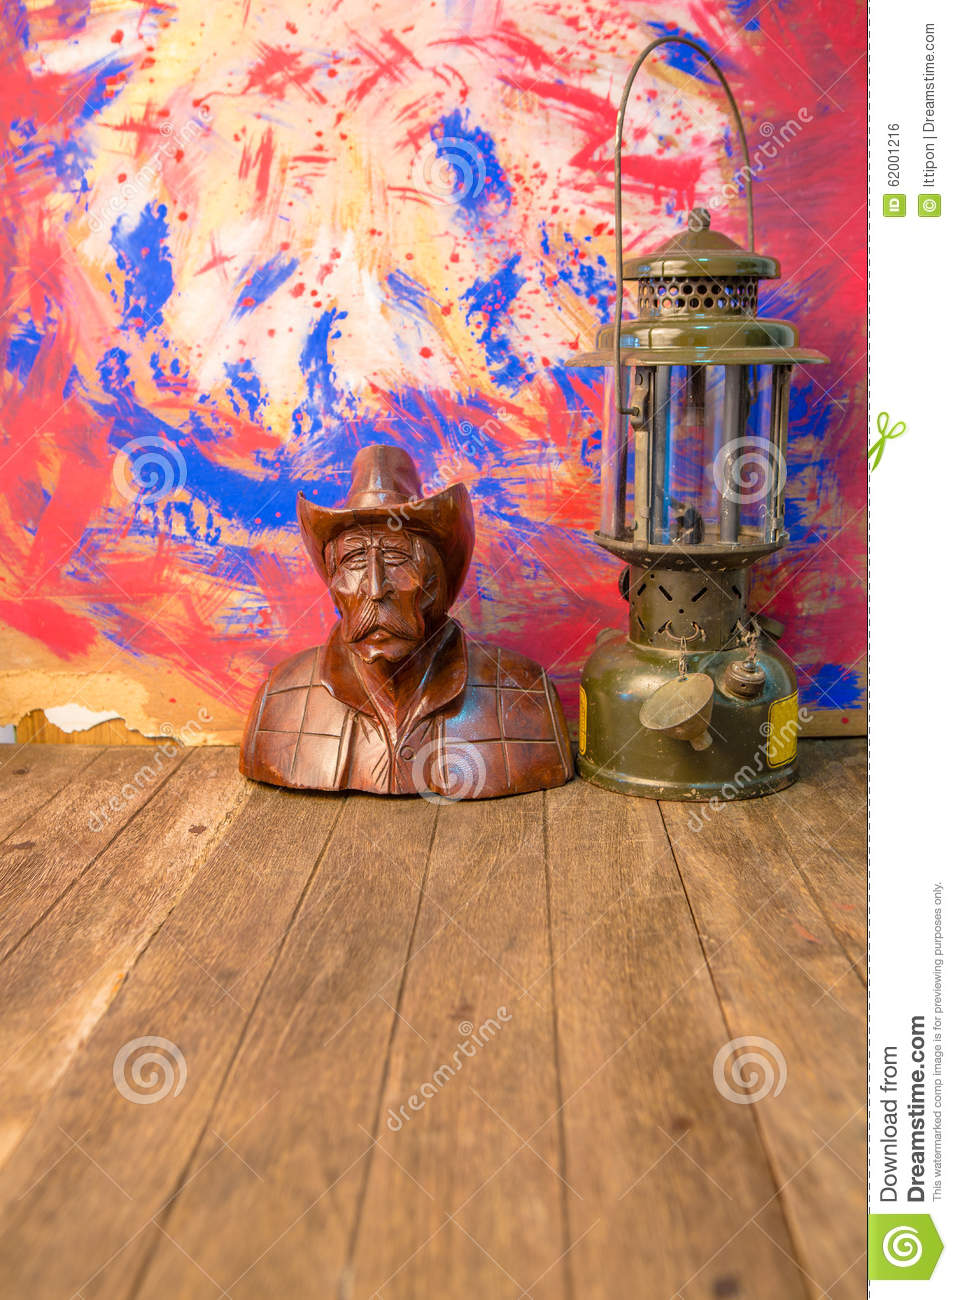 Download Wood Carving With Old Lantern Stock Photo - Image of carving, relaxation: 62001216